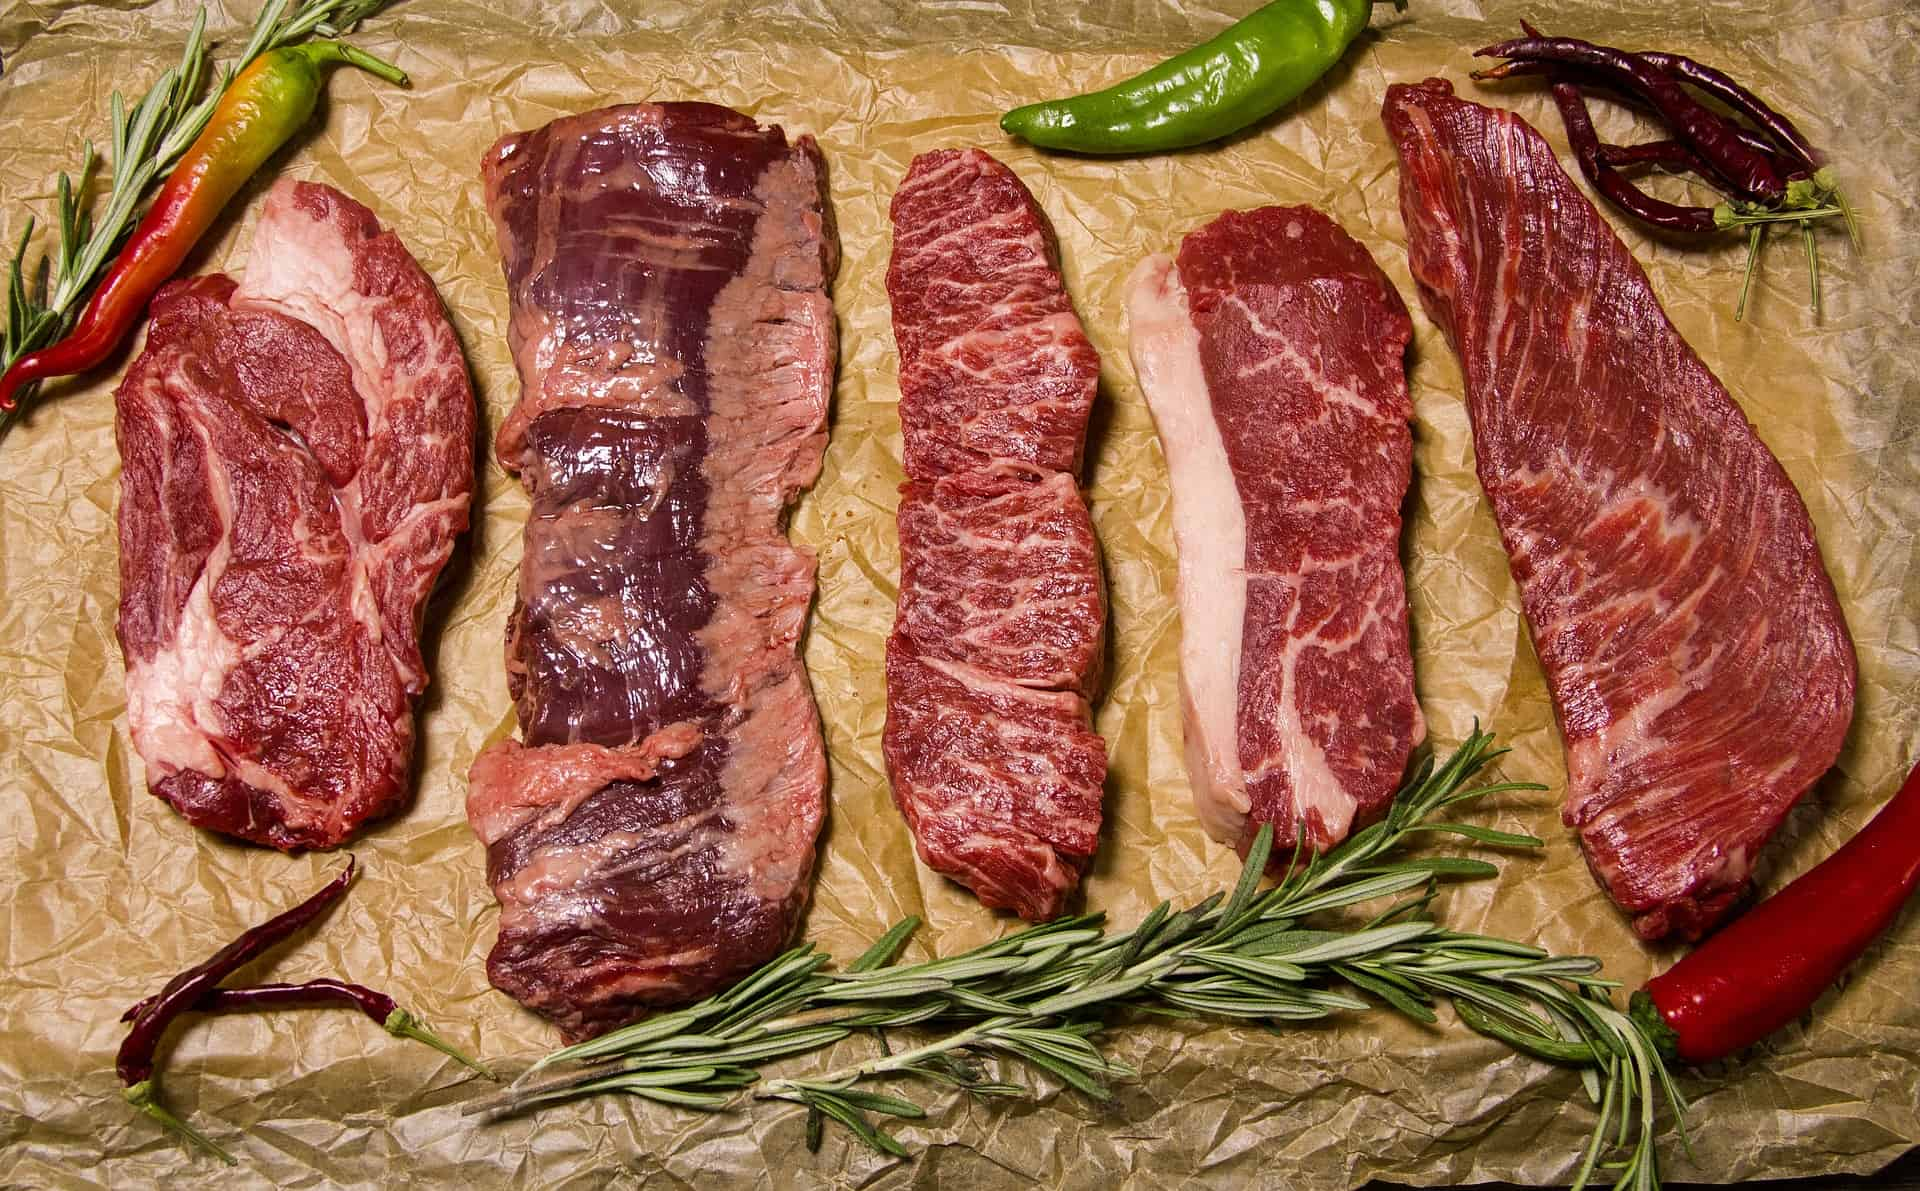 Meat for keto diet